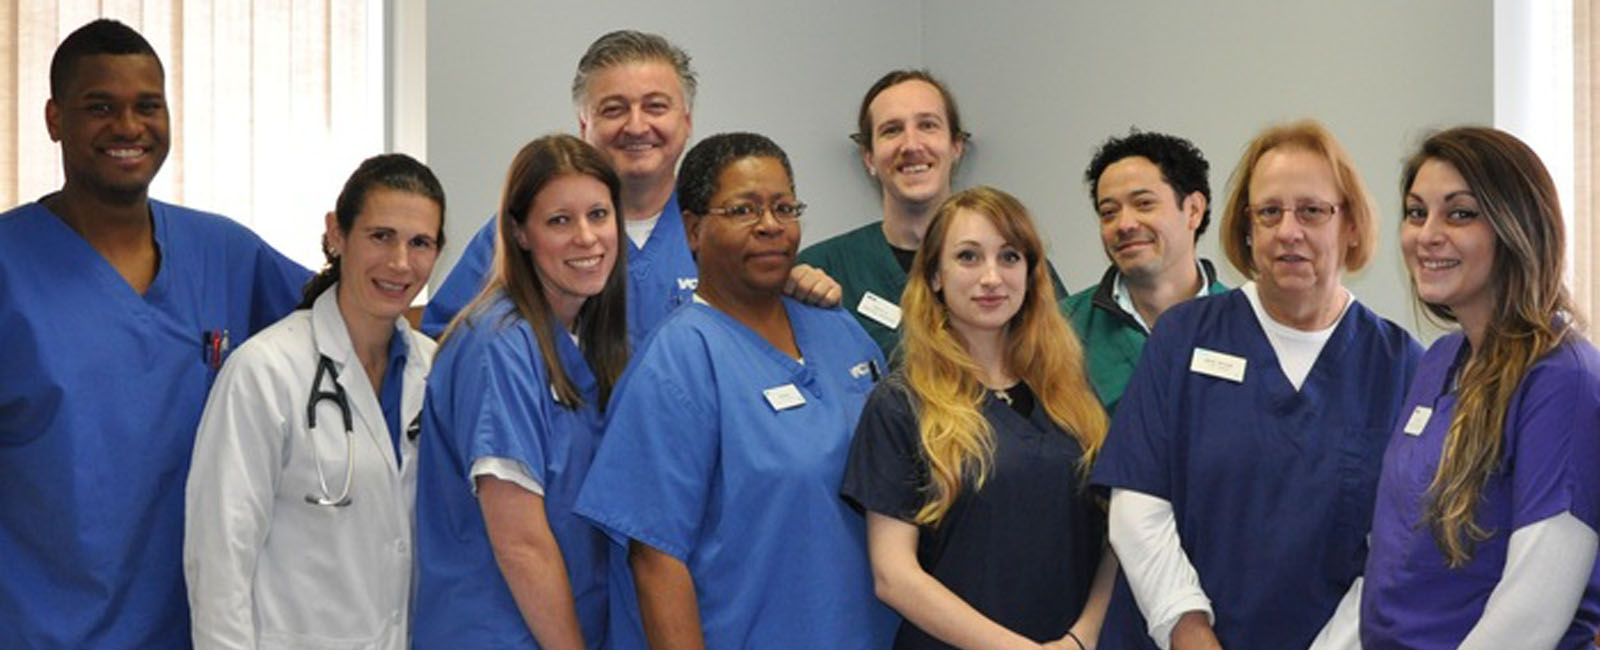 Homepage Team Picture of VCA Everett Animal Hospital